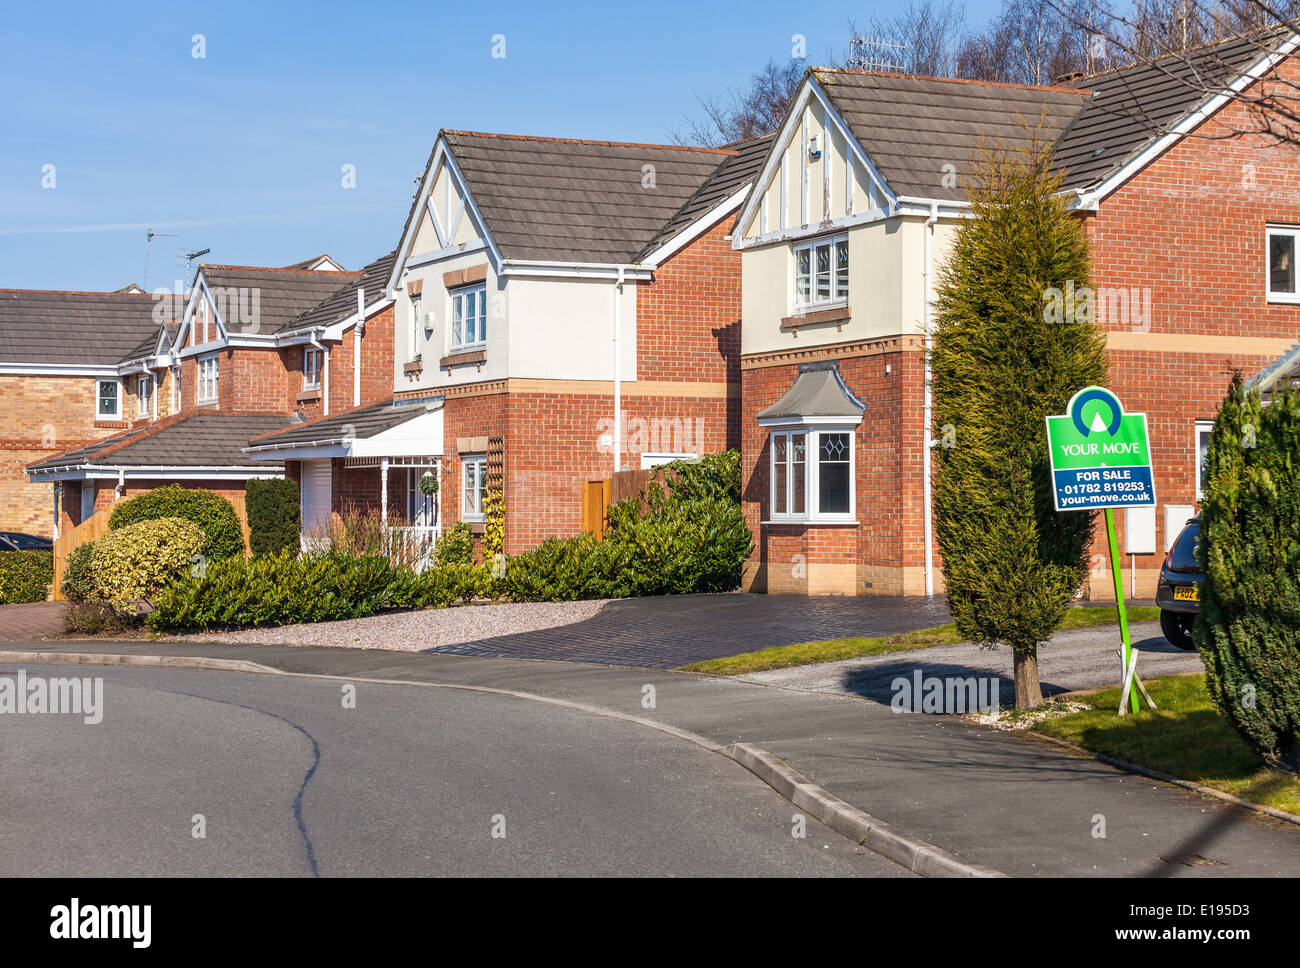 house for sale sign semi detached house for sale in the english stock photo royalty free